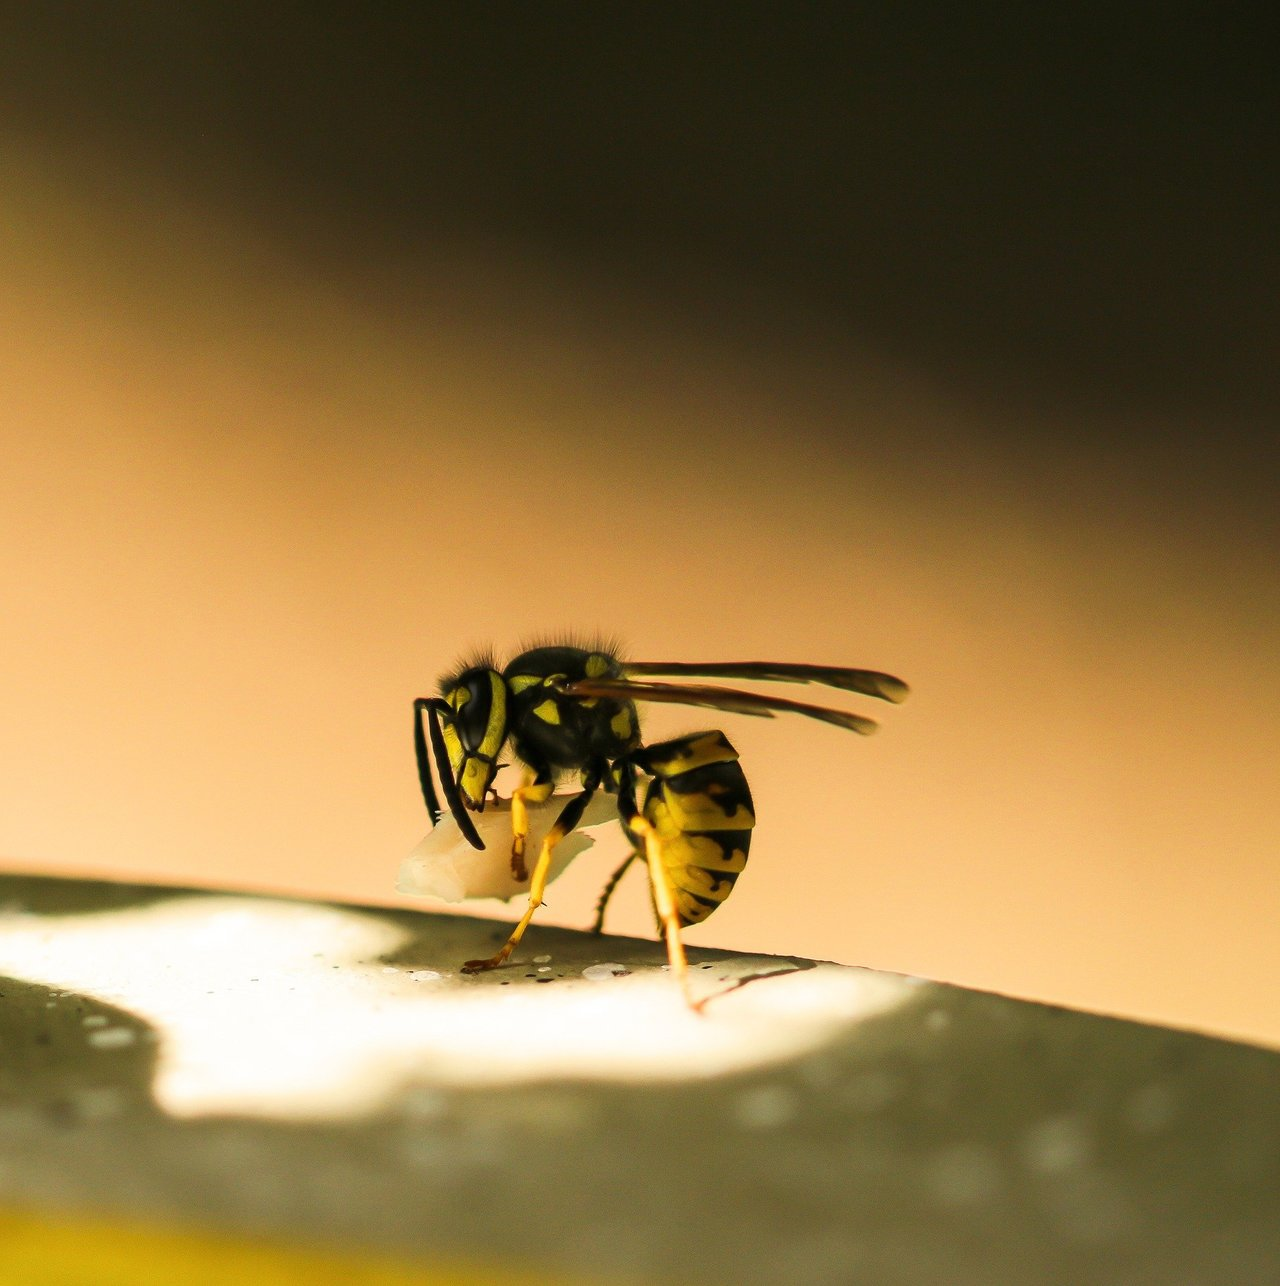 'Profound' evolution: Wasps learn to recognize faces